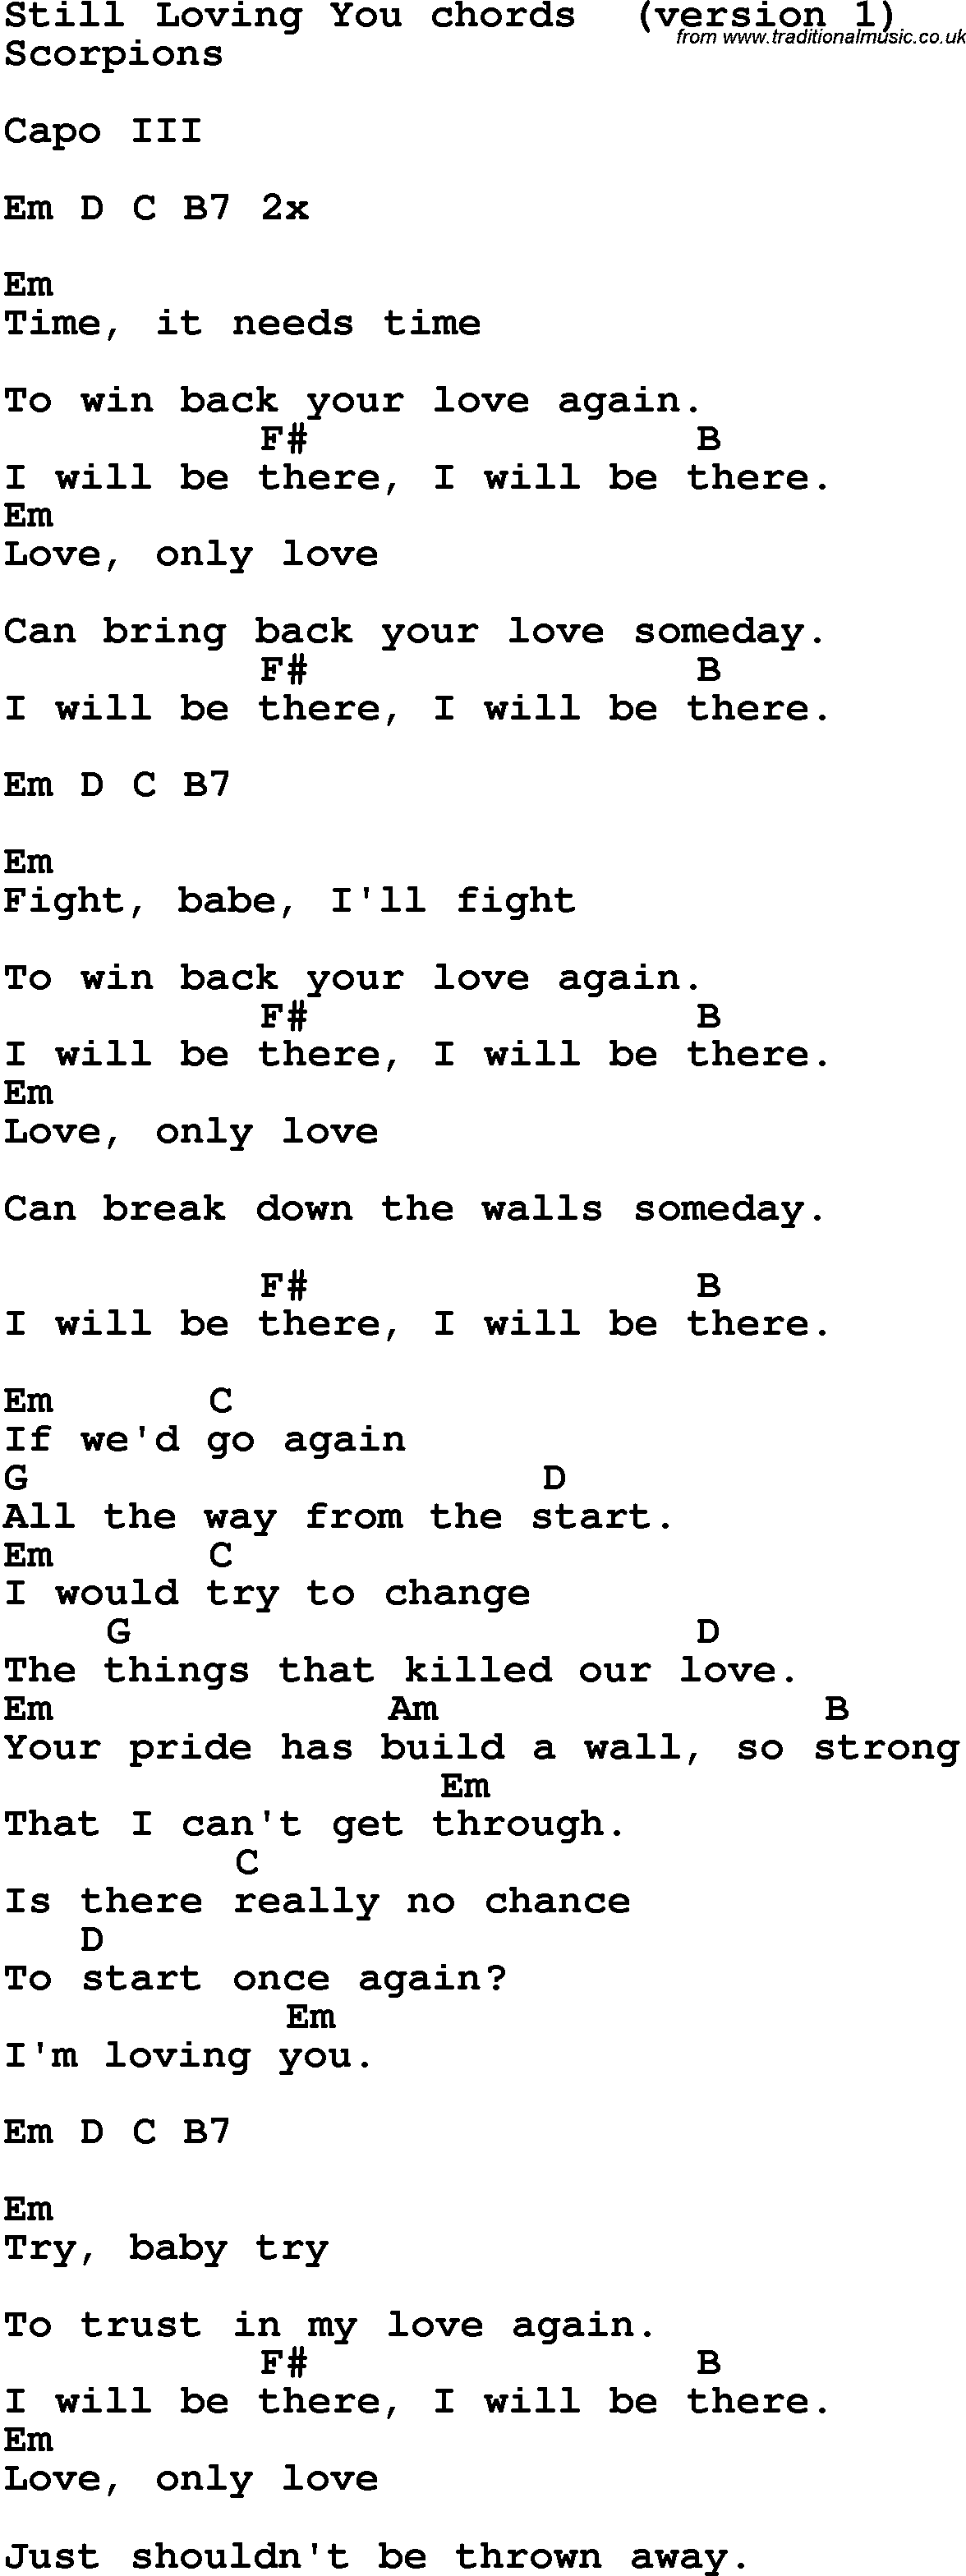 Song Lyrics With Guitar Chords For Still Loving You